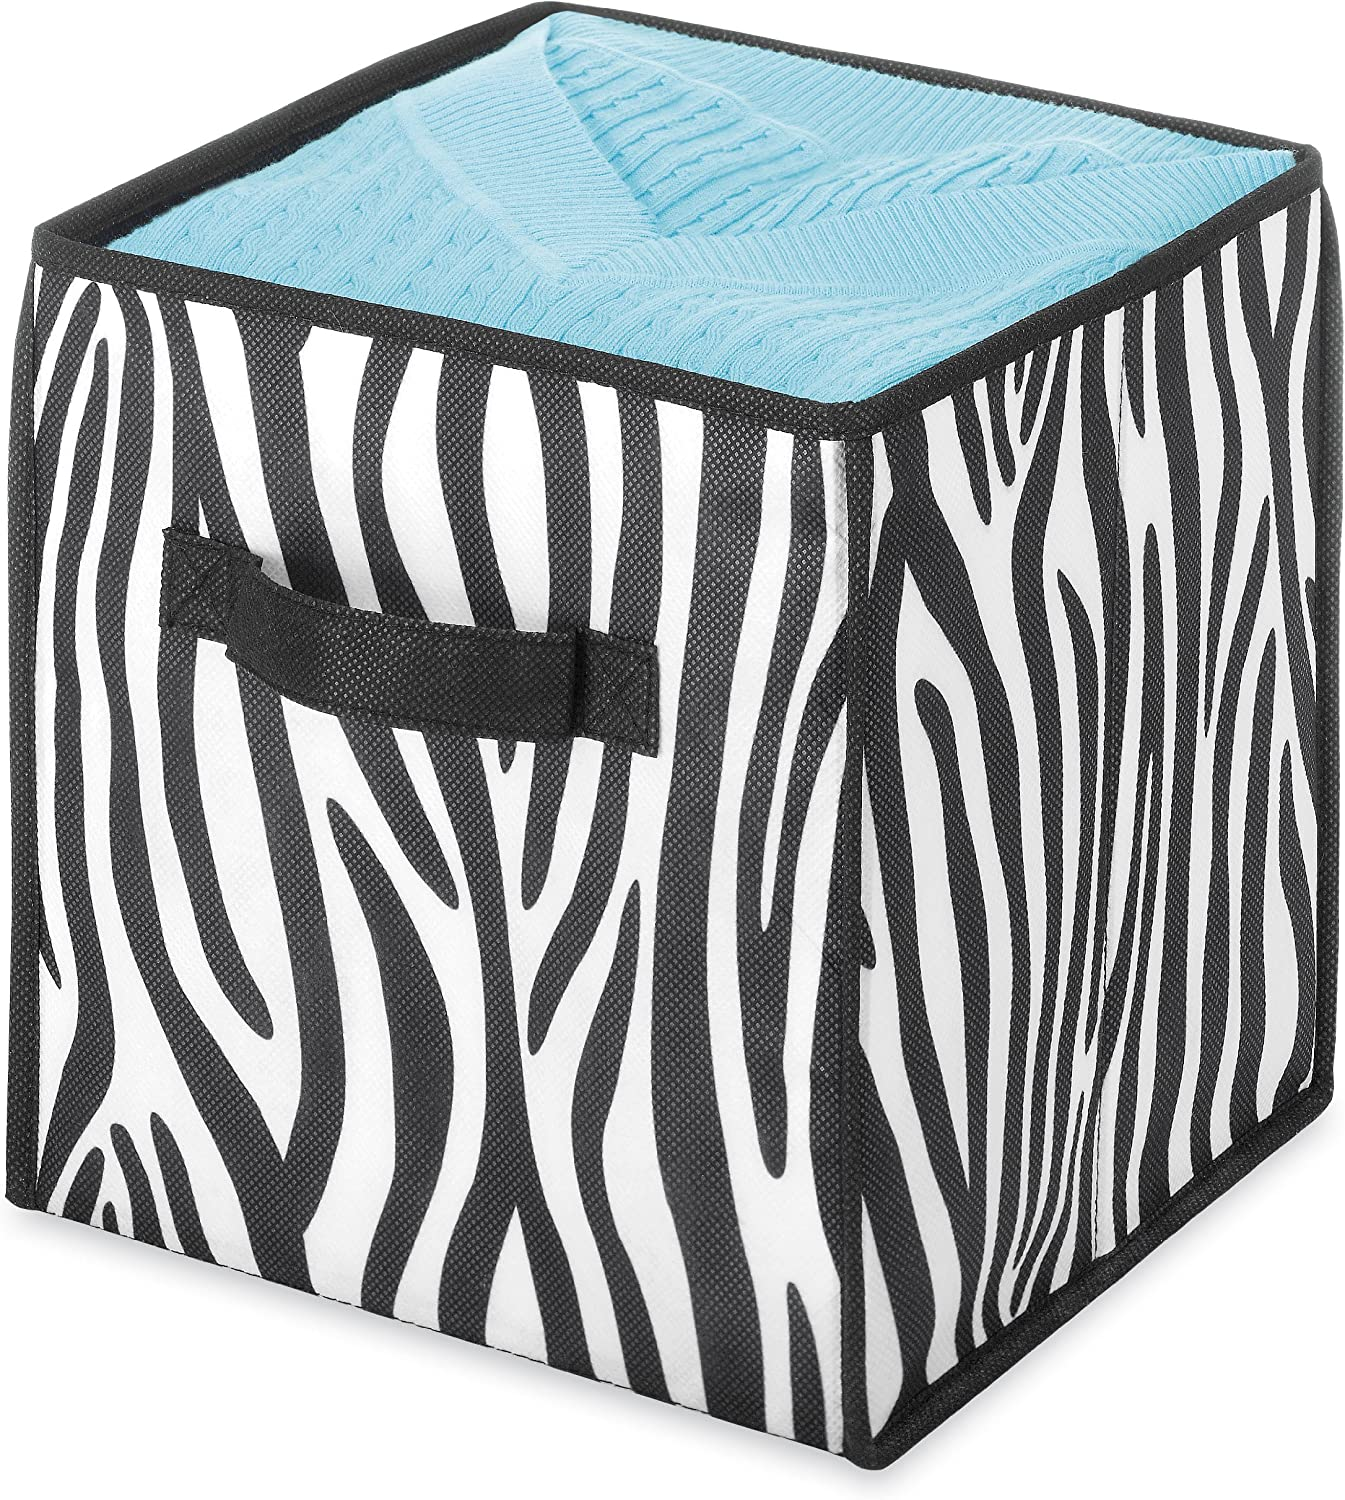 Whitmor Collapsible Cube Ranking TOP19 Limited Special Price Zebra 10-Inch